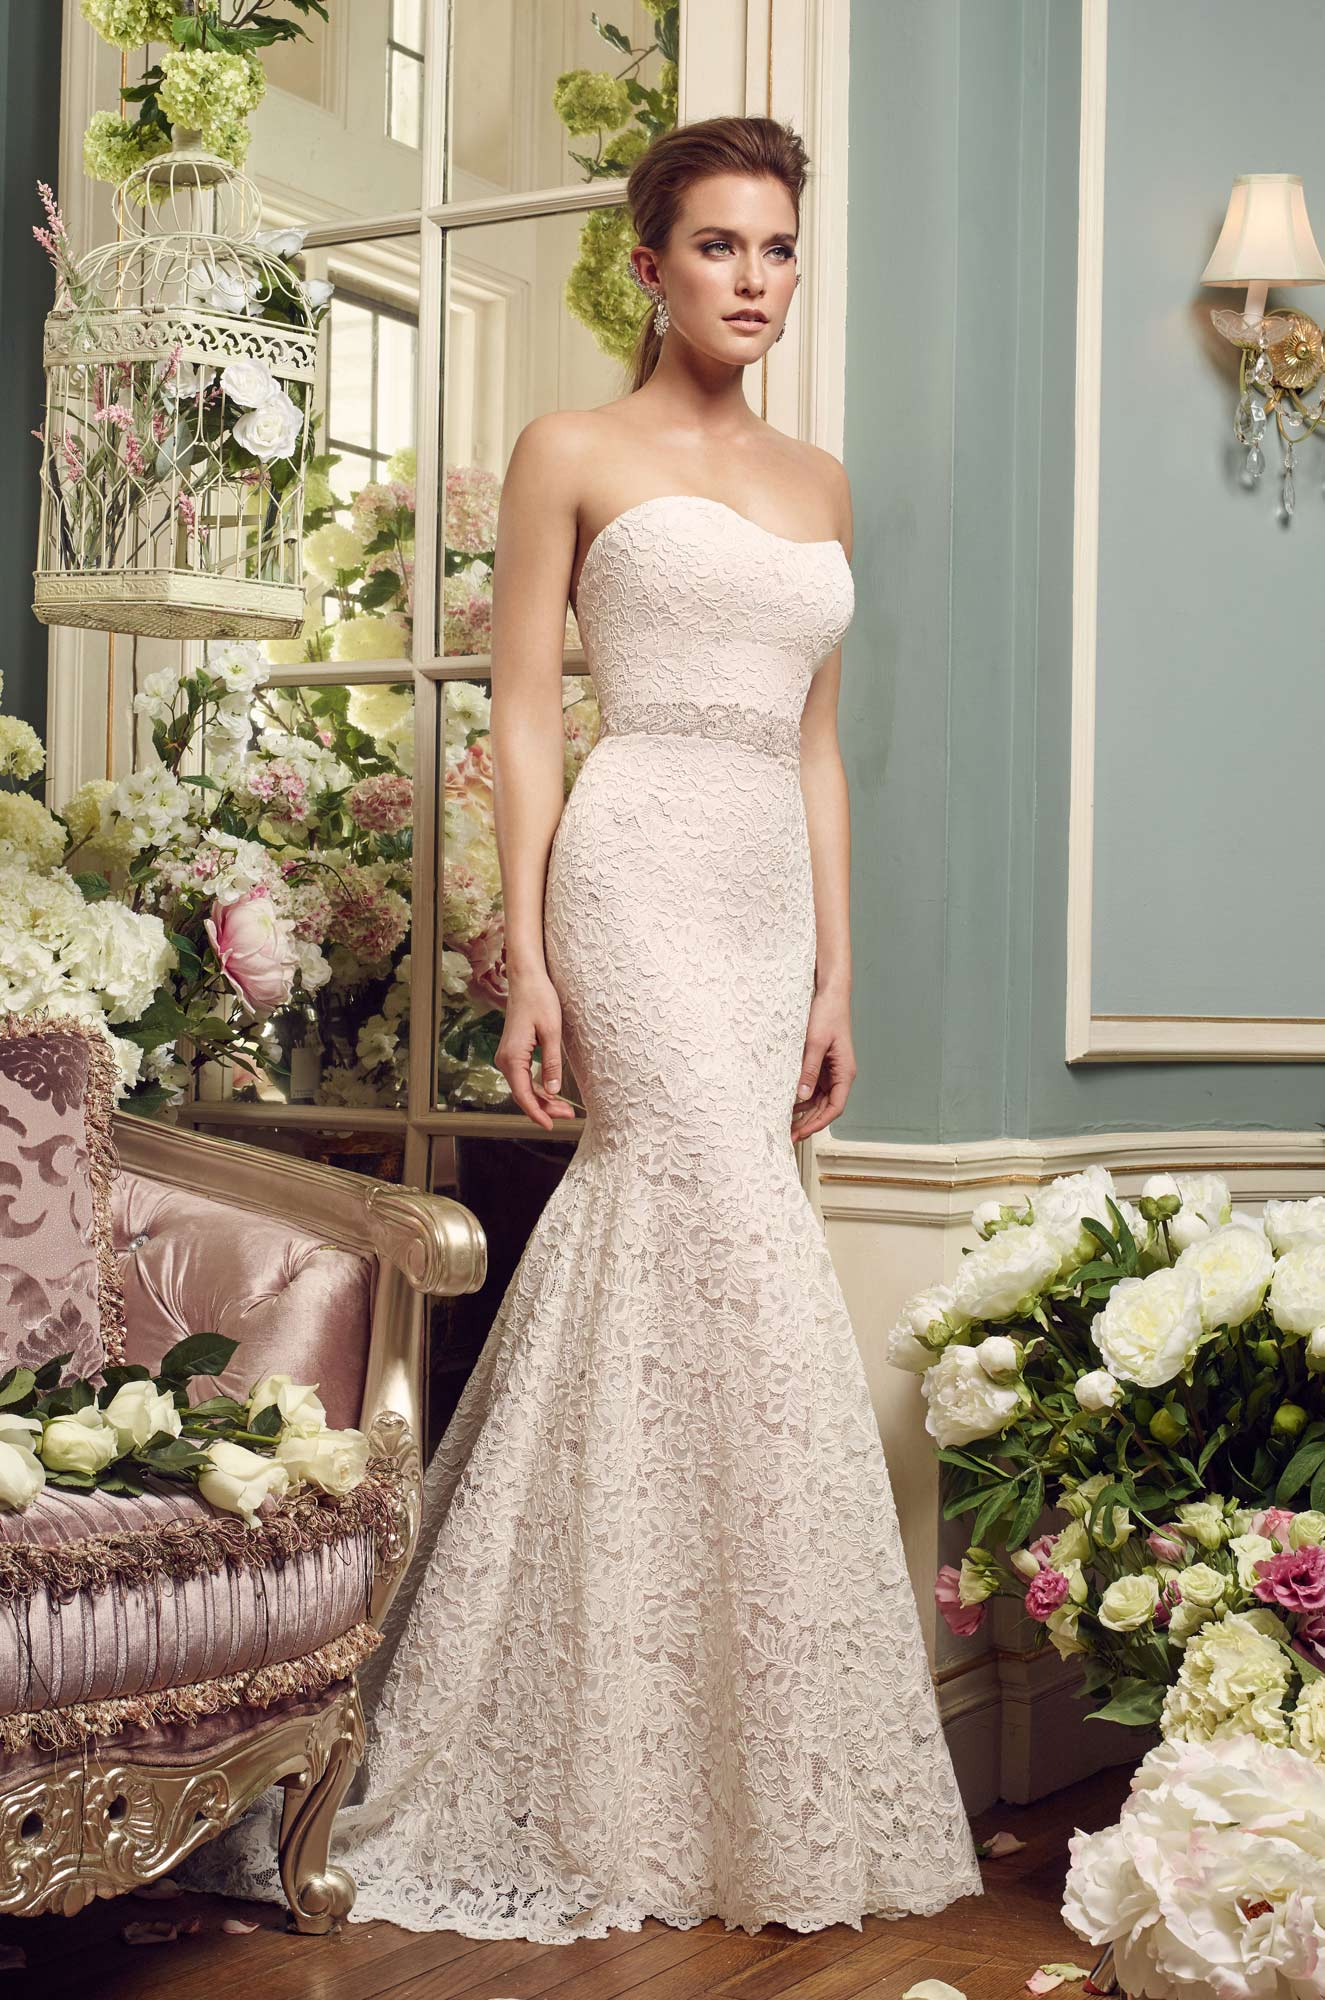 Strapless Lace Wedding Dress – Style #2165 | Mikaella Bridal